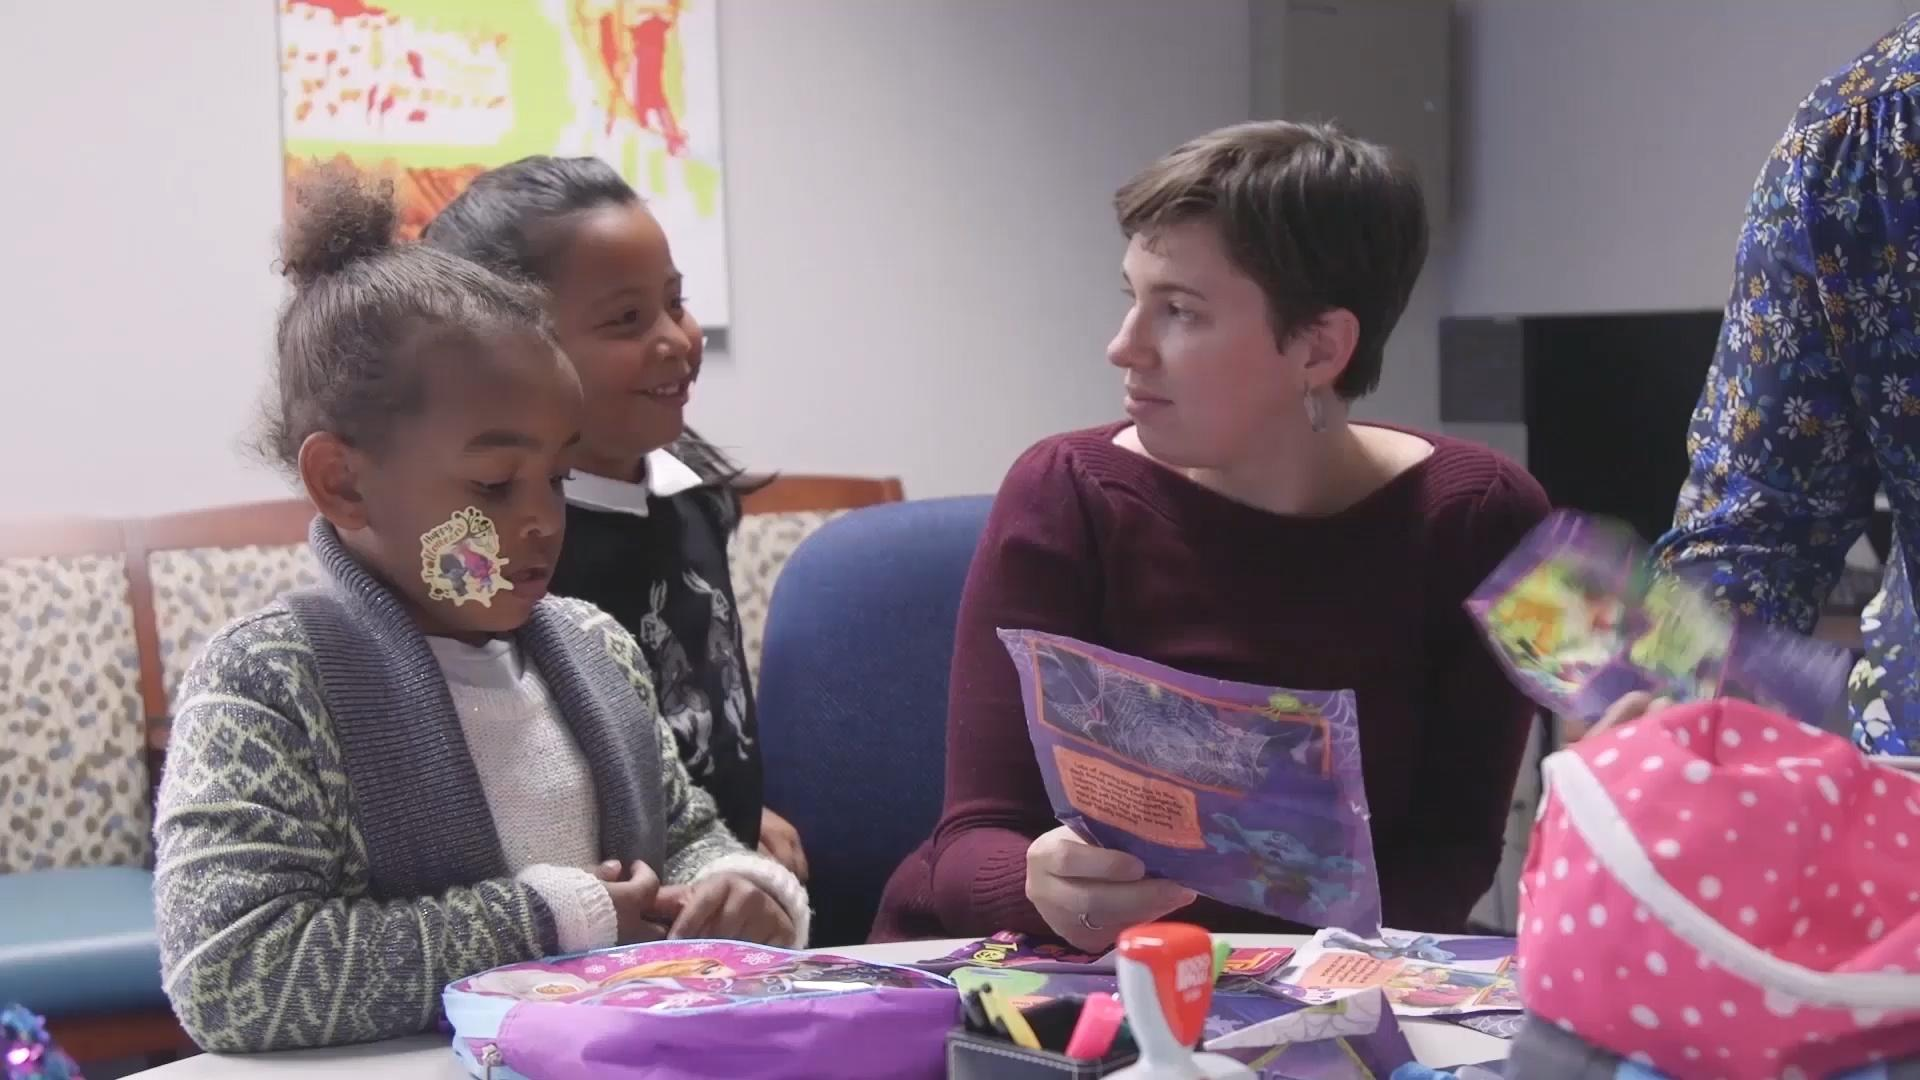 Every Child Needs Pre-K Access: Forsyth County